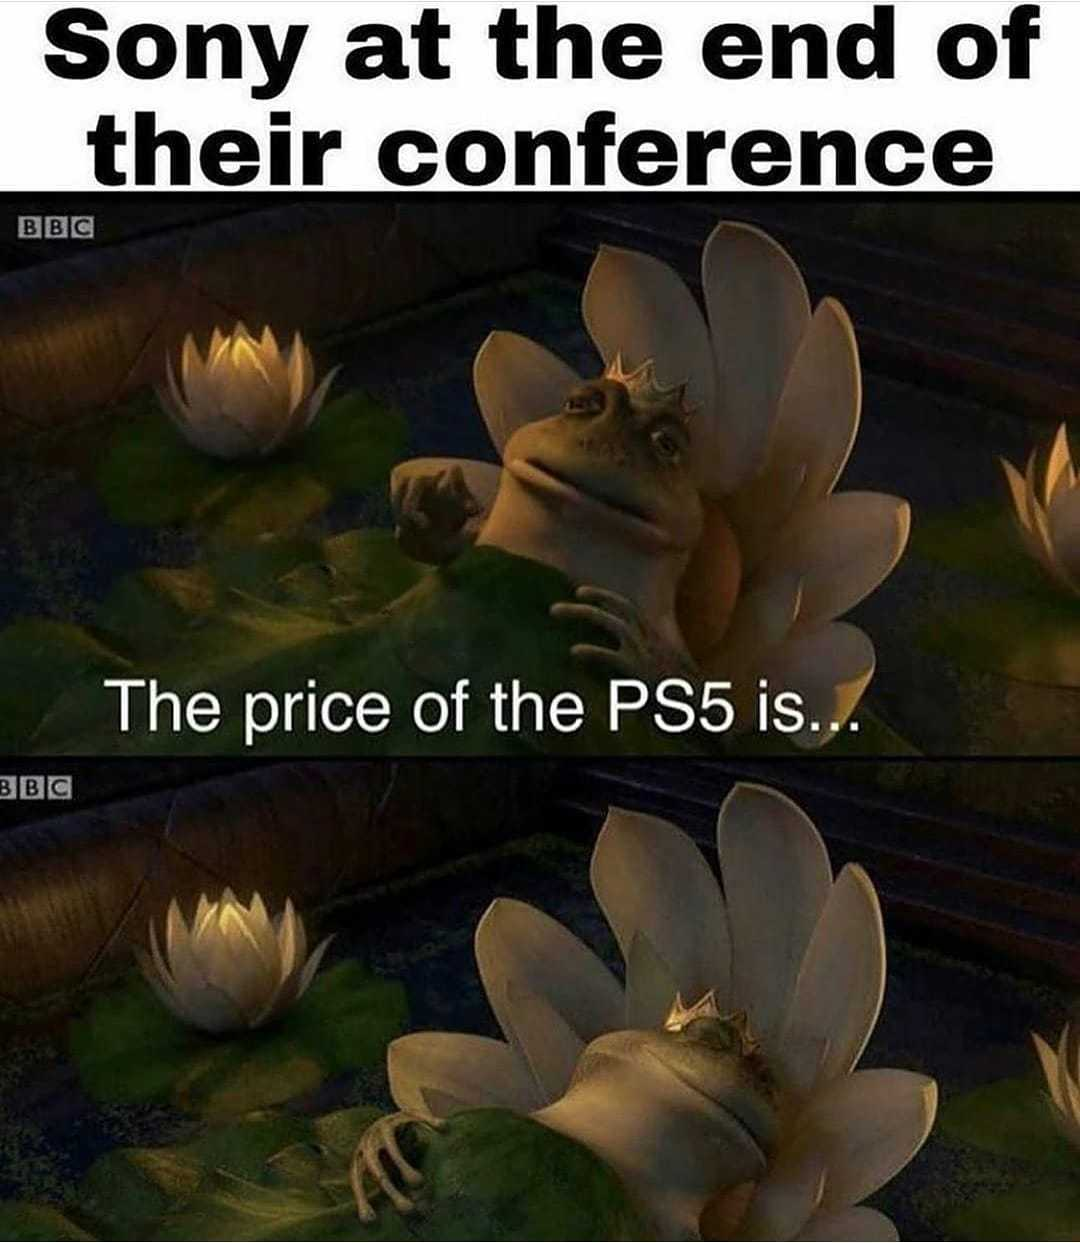 The price of the PS5 is....bruh - meme